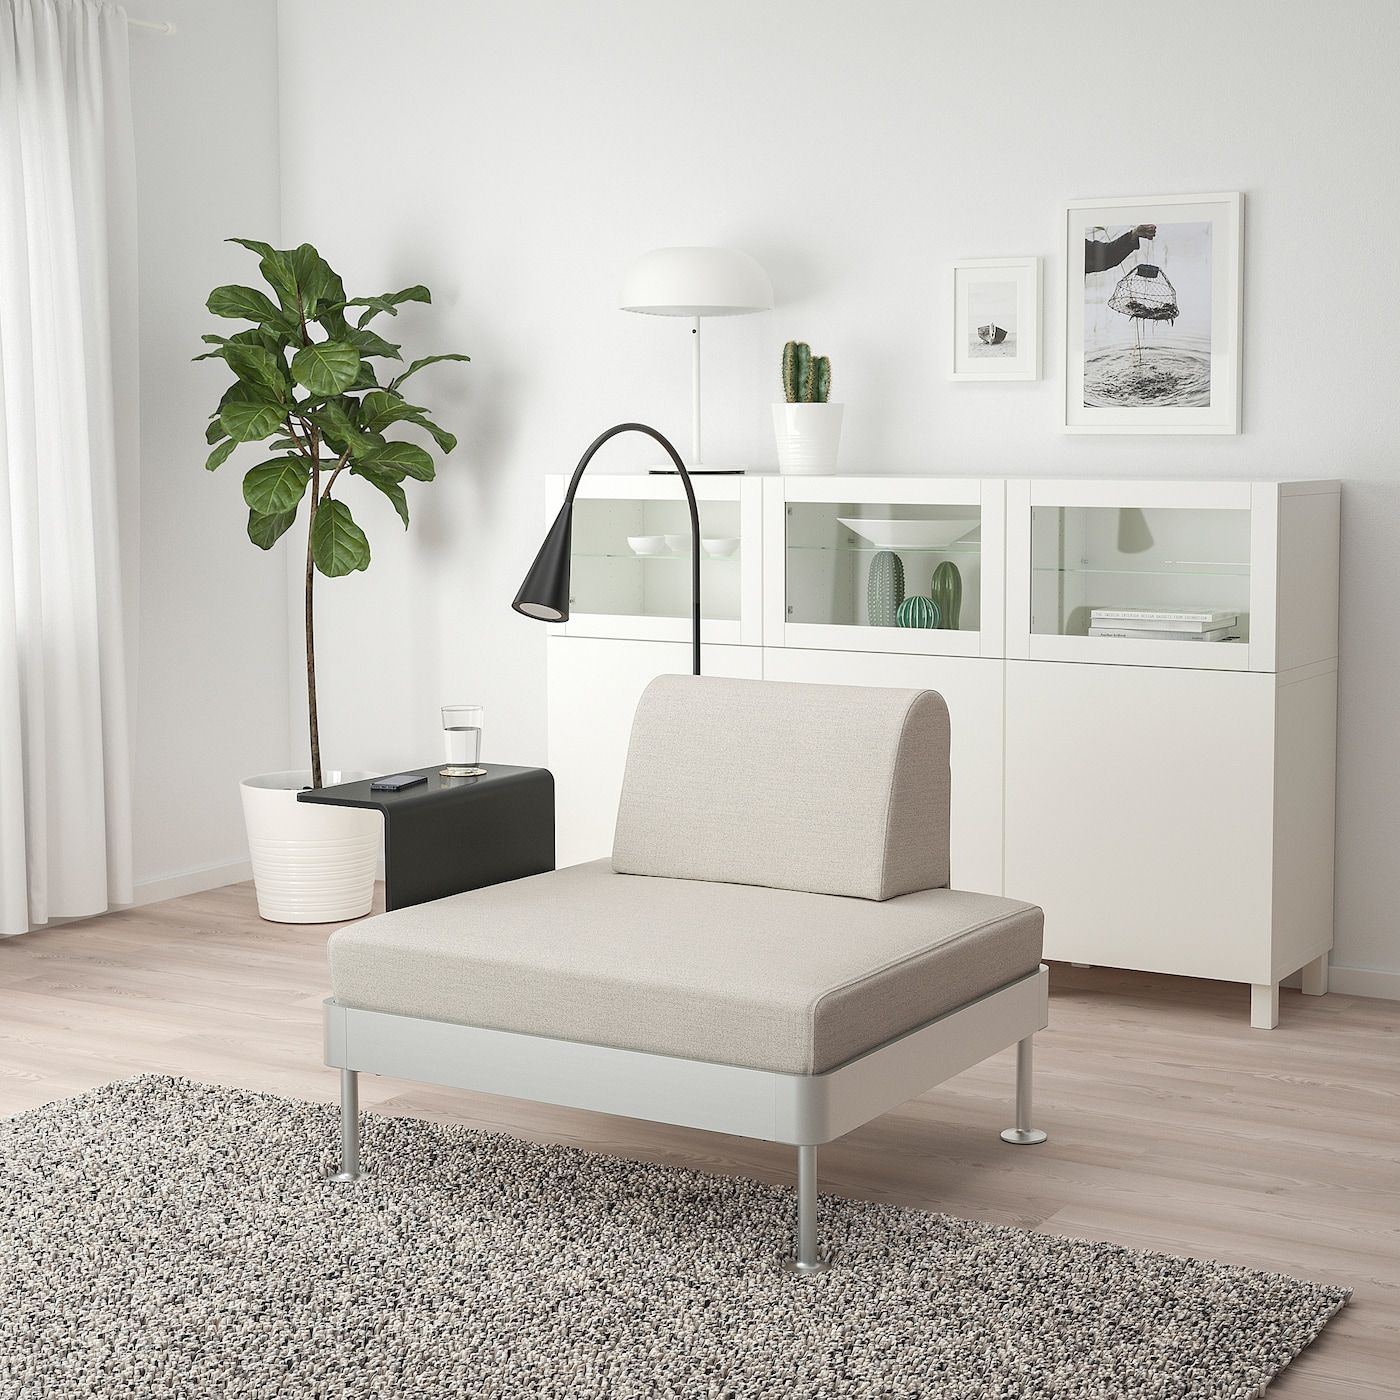 Delaktig Armchair With Side Table And Lamp Gunnared Beige Ikea In 2020 Fabric Armchairs Ikea Furniture